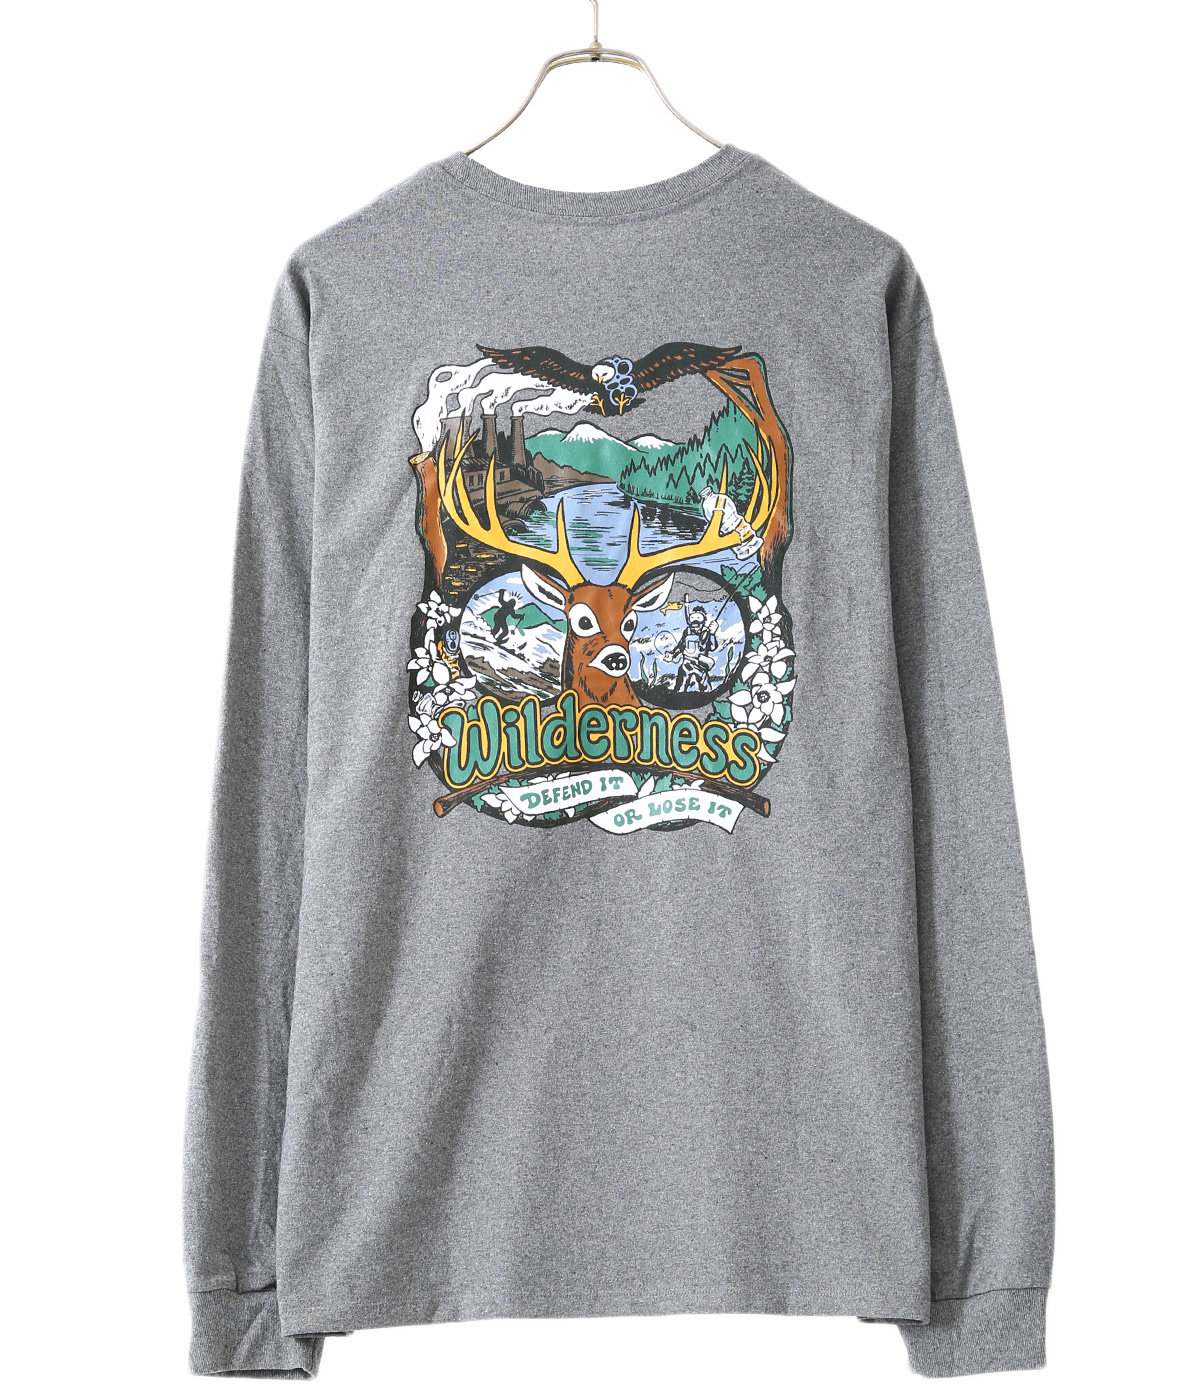 M's L/S Yes To Wilderness ResponsibiliTee -GLH-